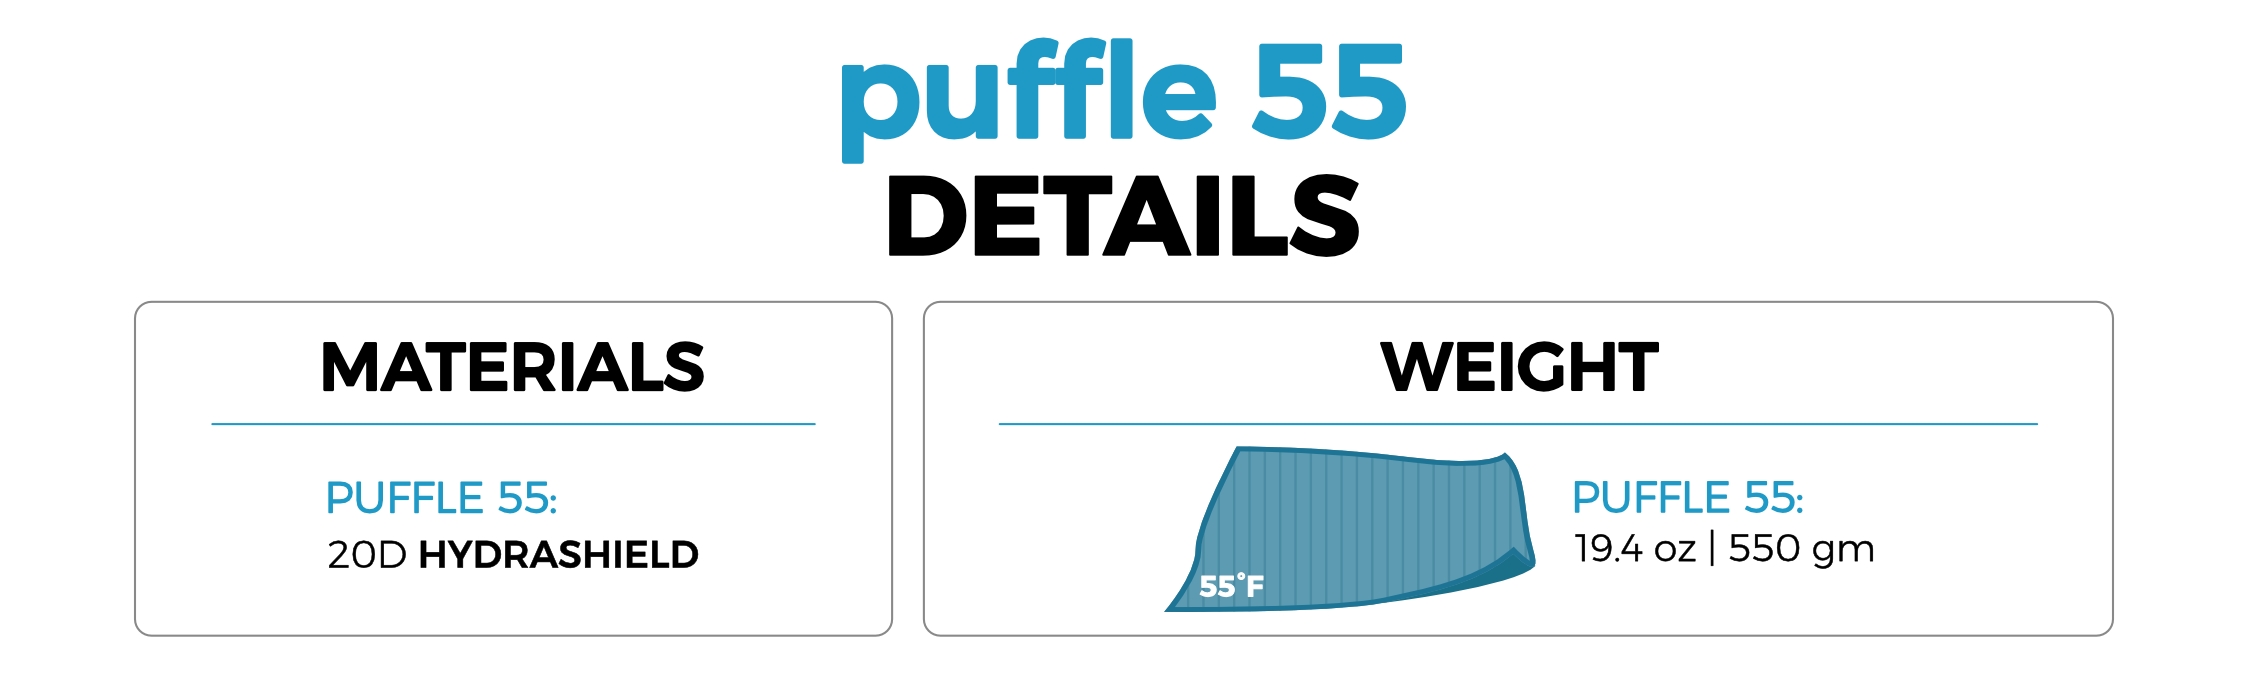 Stackable Puffle 55° details weights and temperature rating.